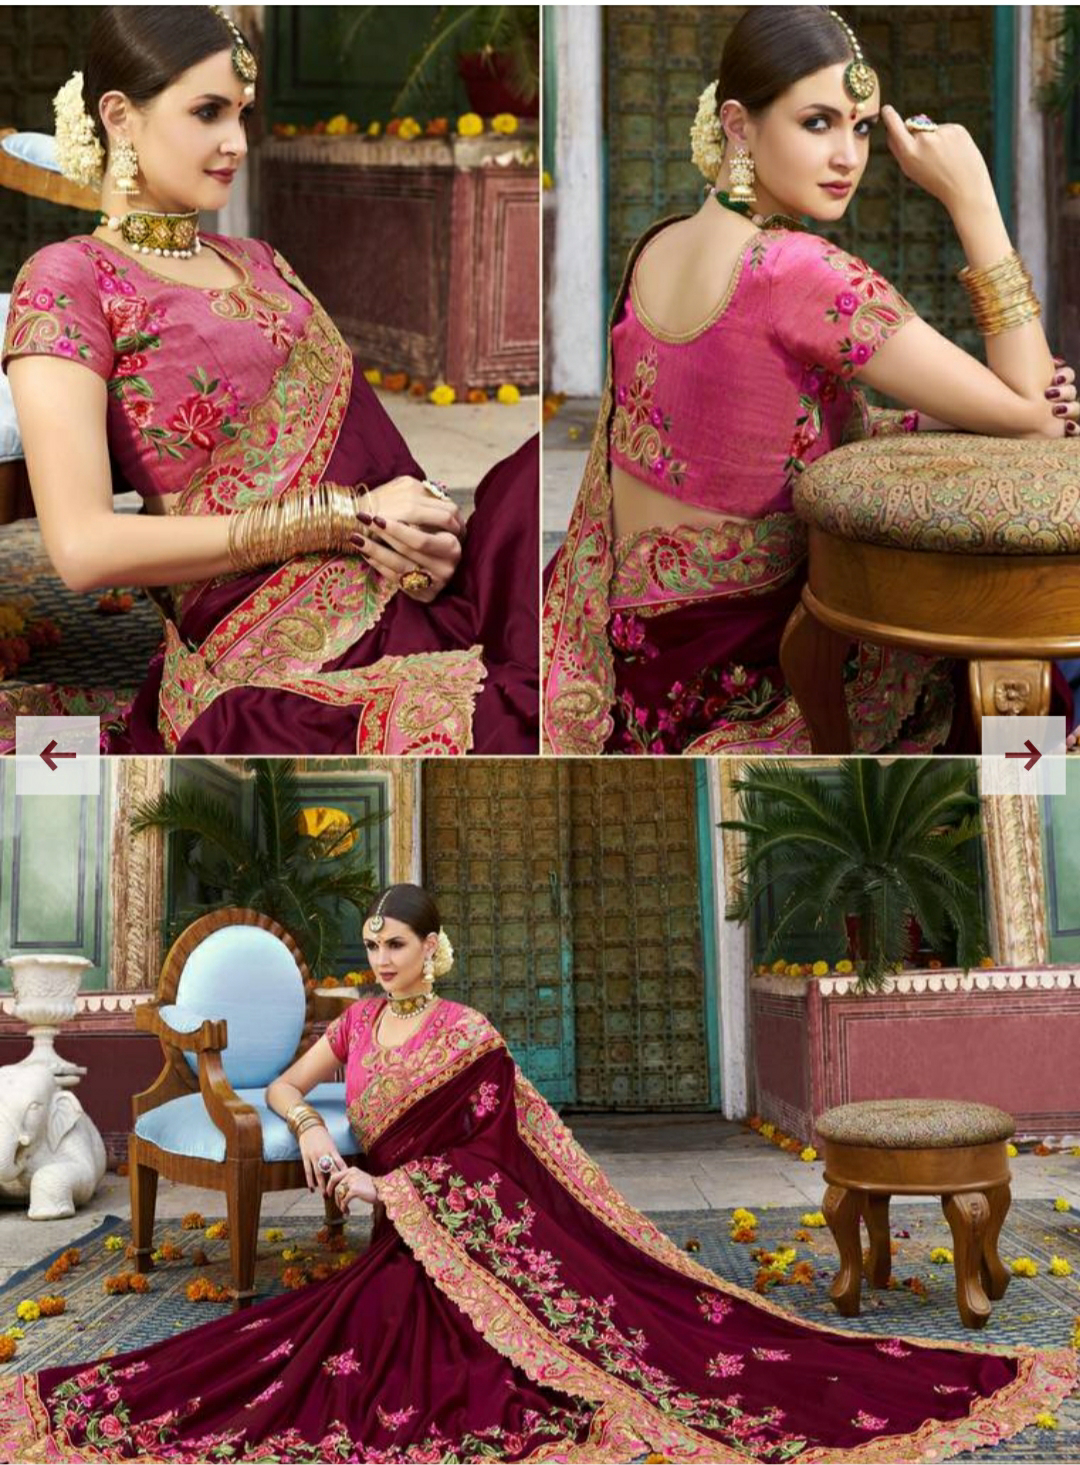 fashionistaspeaks-MIRRAW-  WHERE ONE CAN GET ALL TRADITIONAL INDIAN CLOTHING LIKE SAREES, SALWAR SUITS, LEHENGA,SHERWANI AND MORE ON ONE PLACE